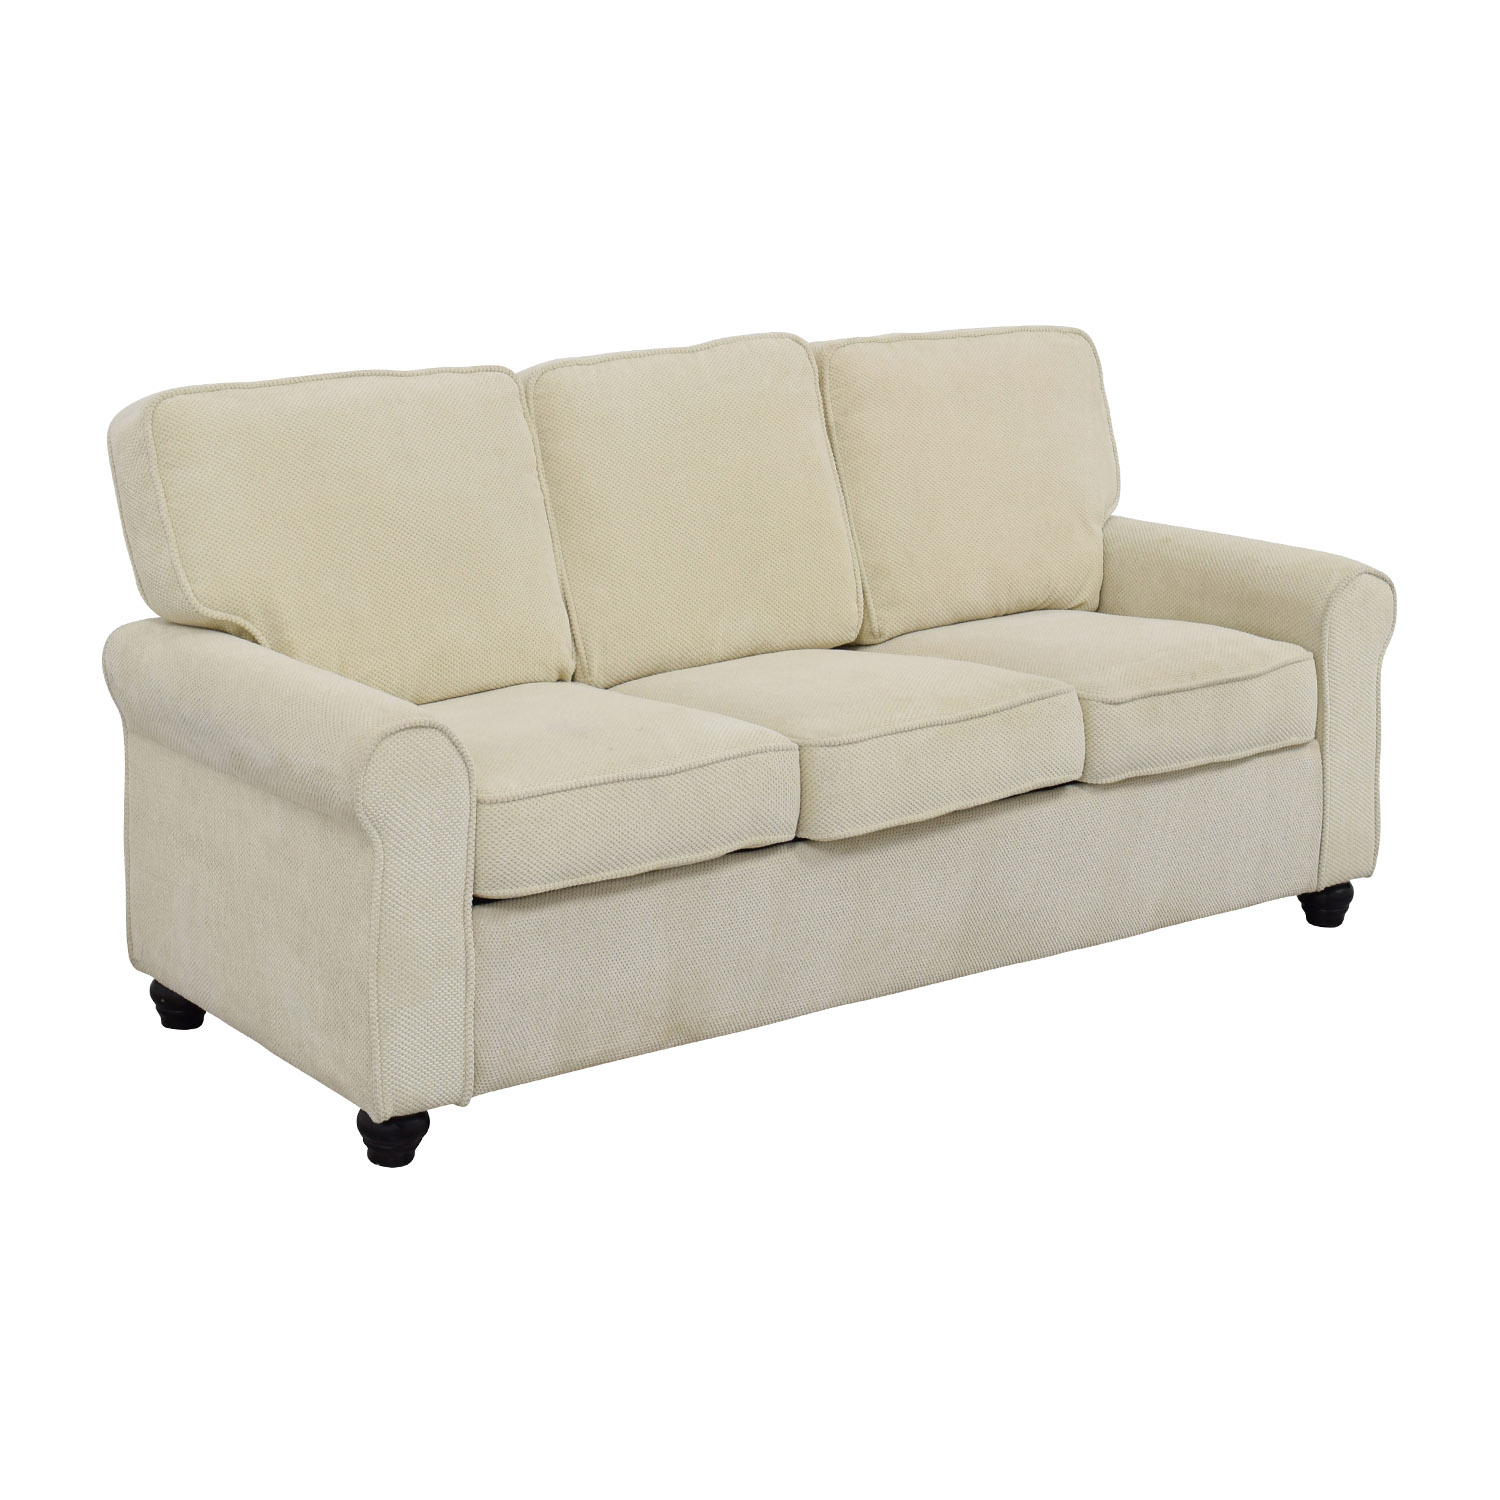 Second hand sofa bradford refil sofa for Second hand sofas